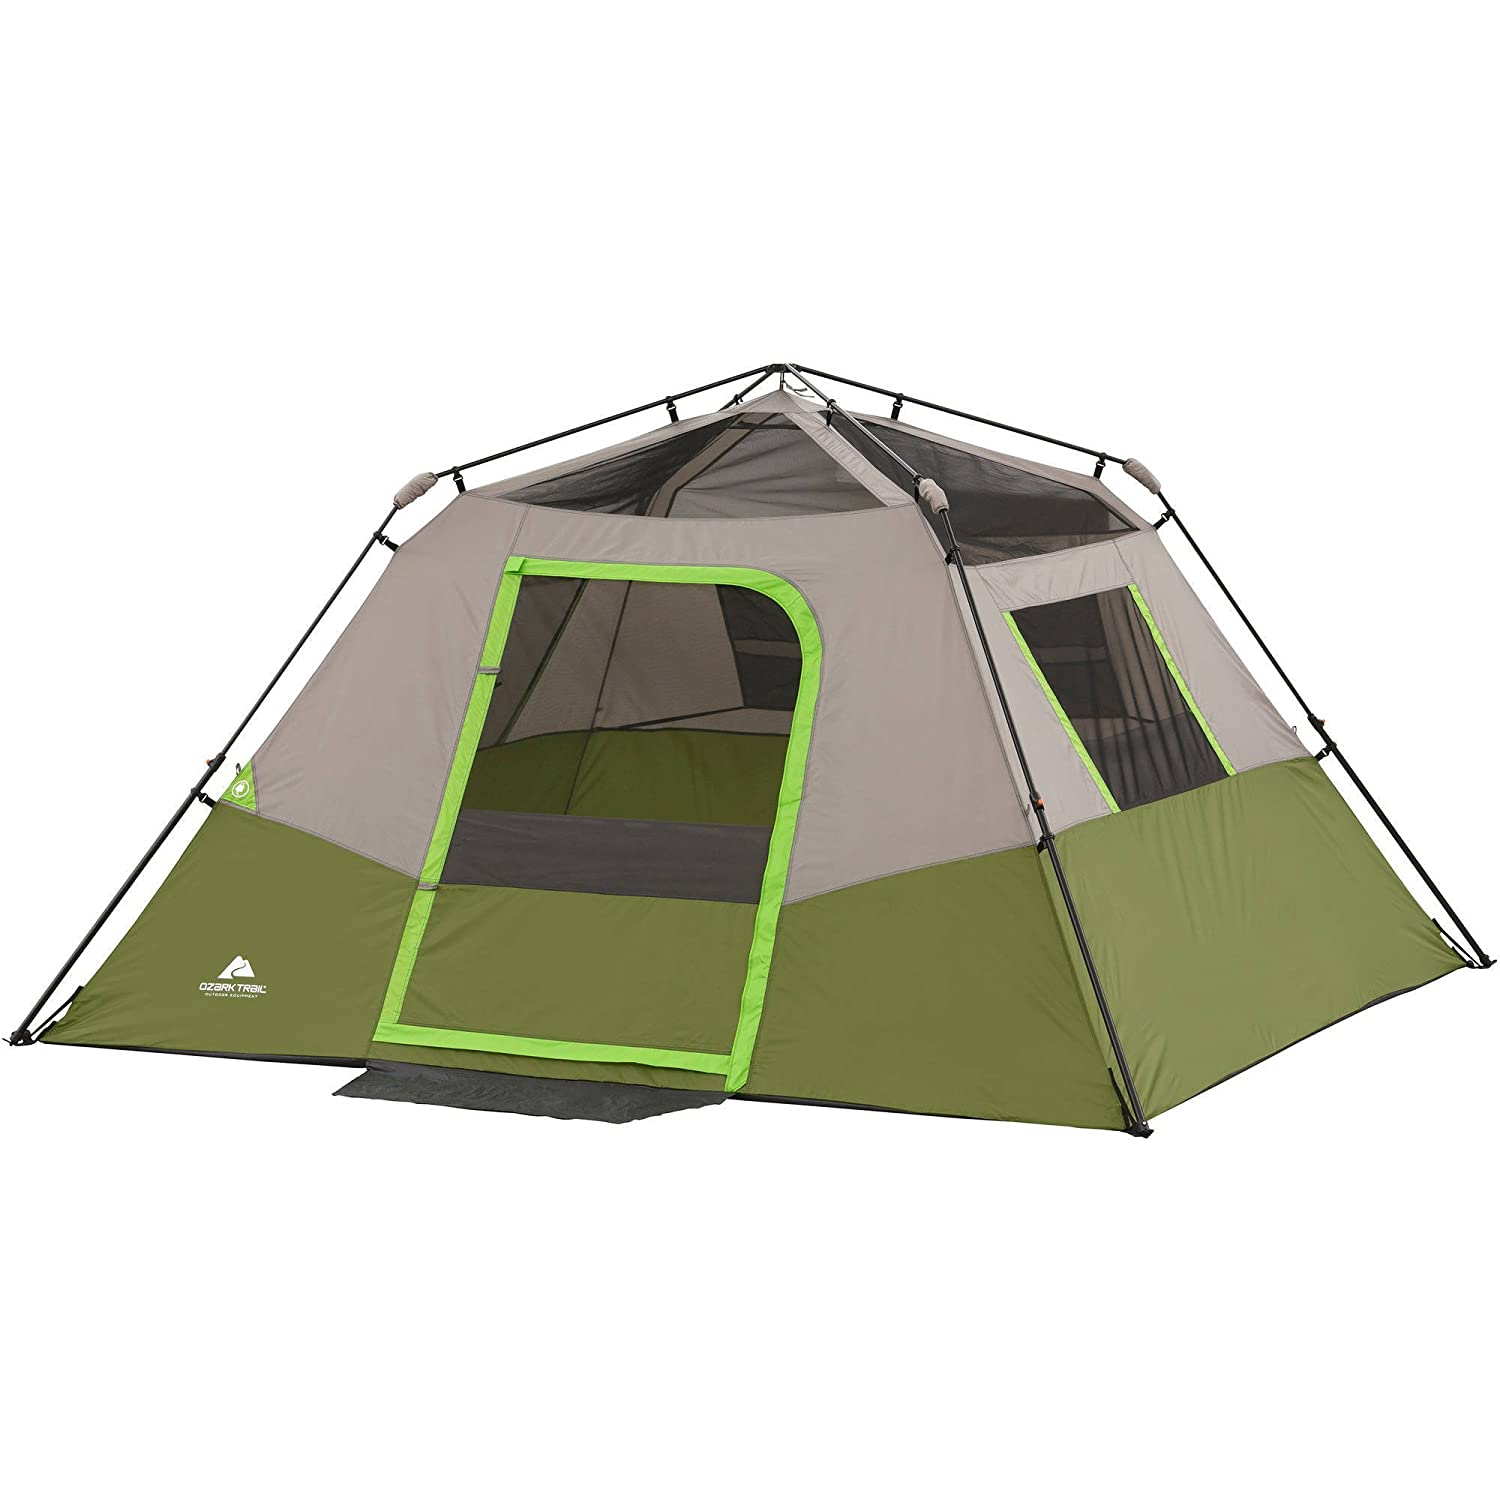 Ozark Trail 6 Person Instant Cabin Tent  sc 1 st  Outdoorzer.com & The Best 6-Person Tent: An Expert Guide | Outdoorzer